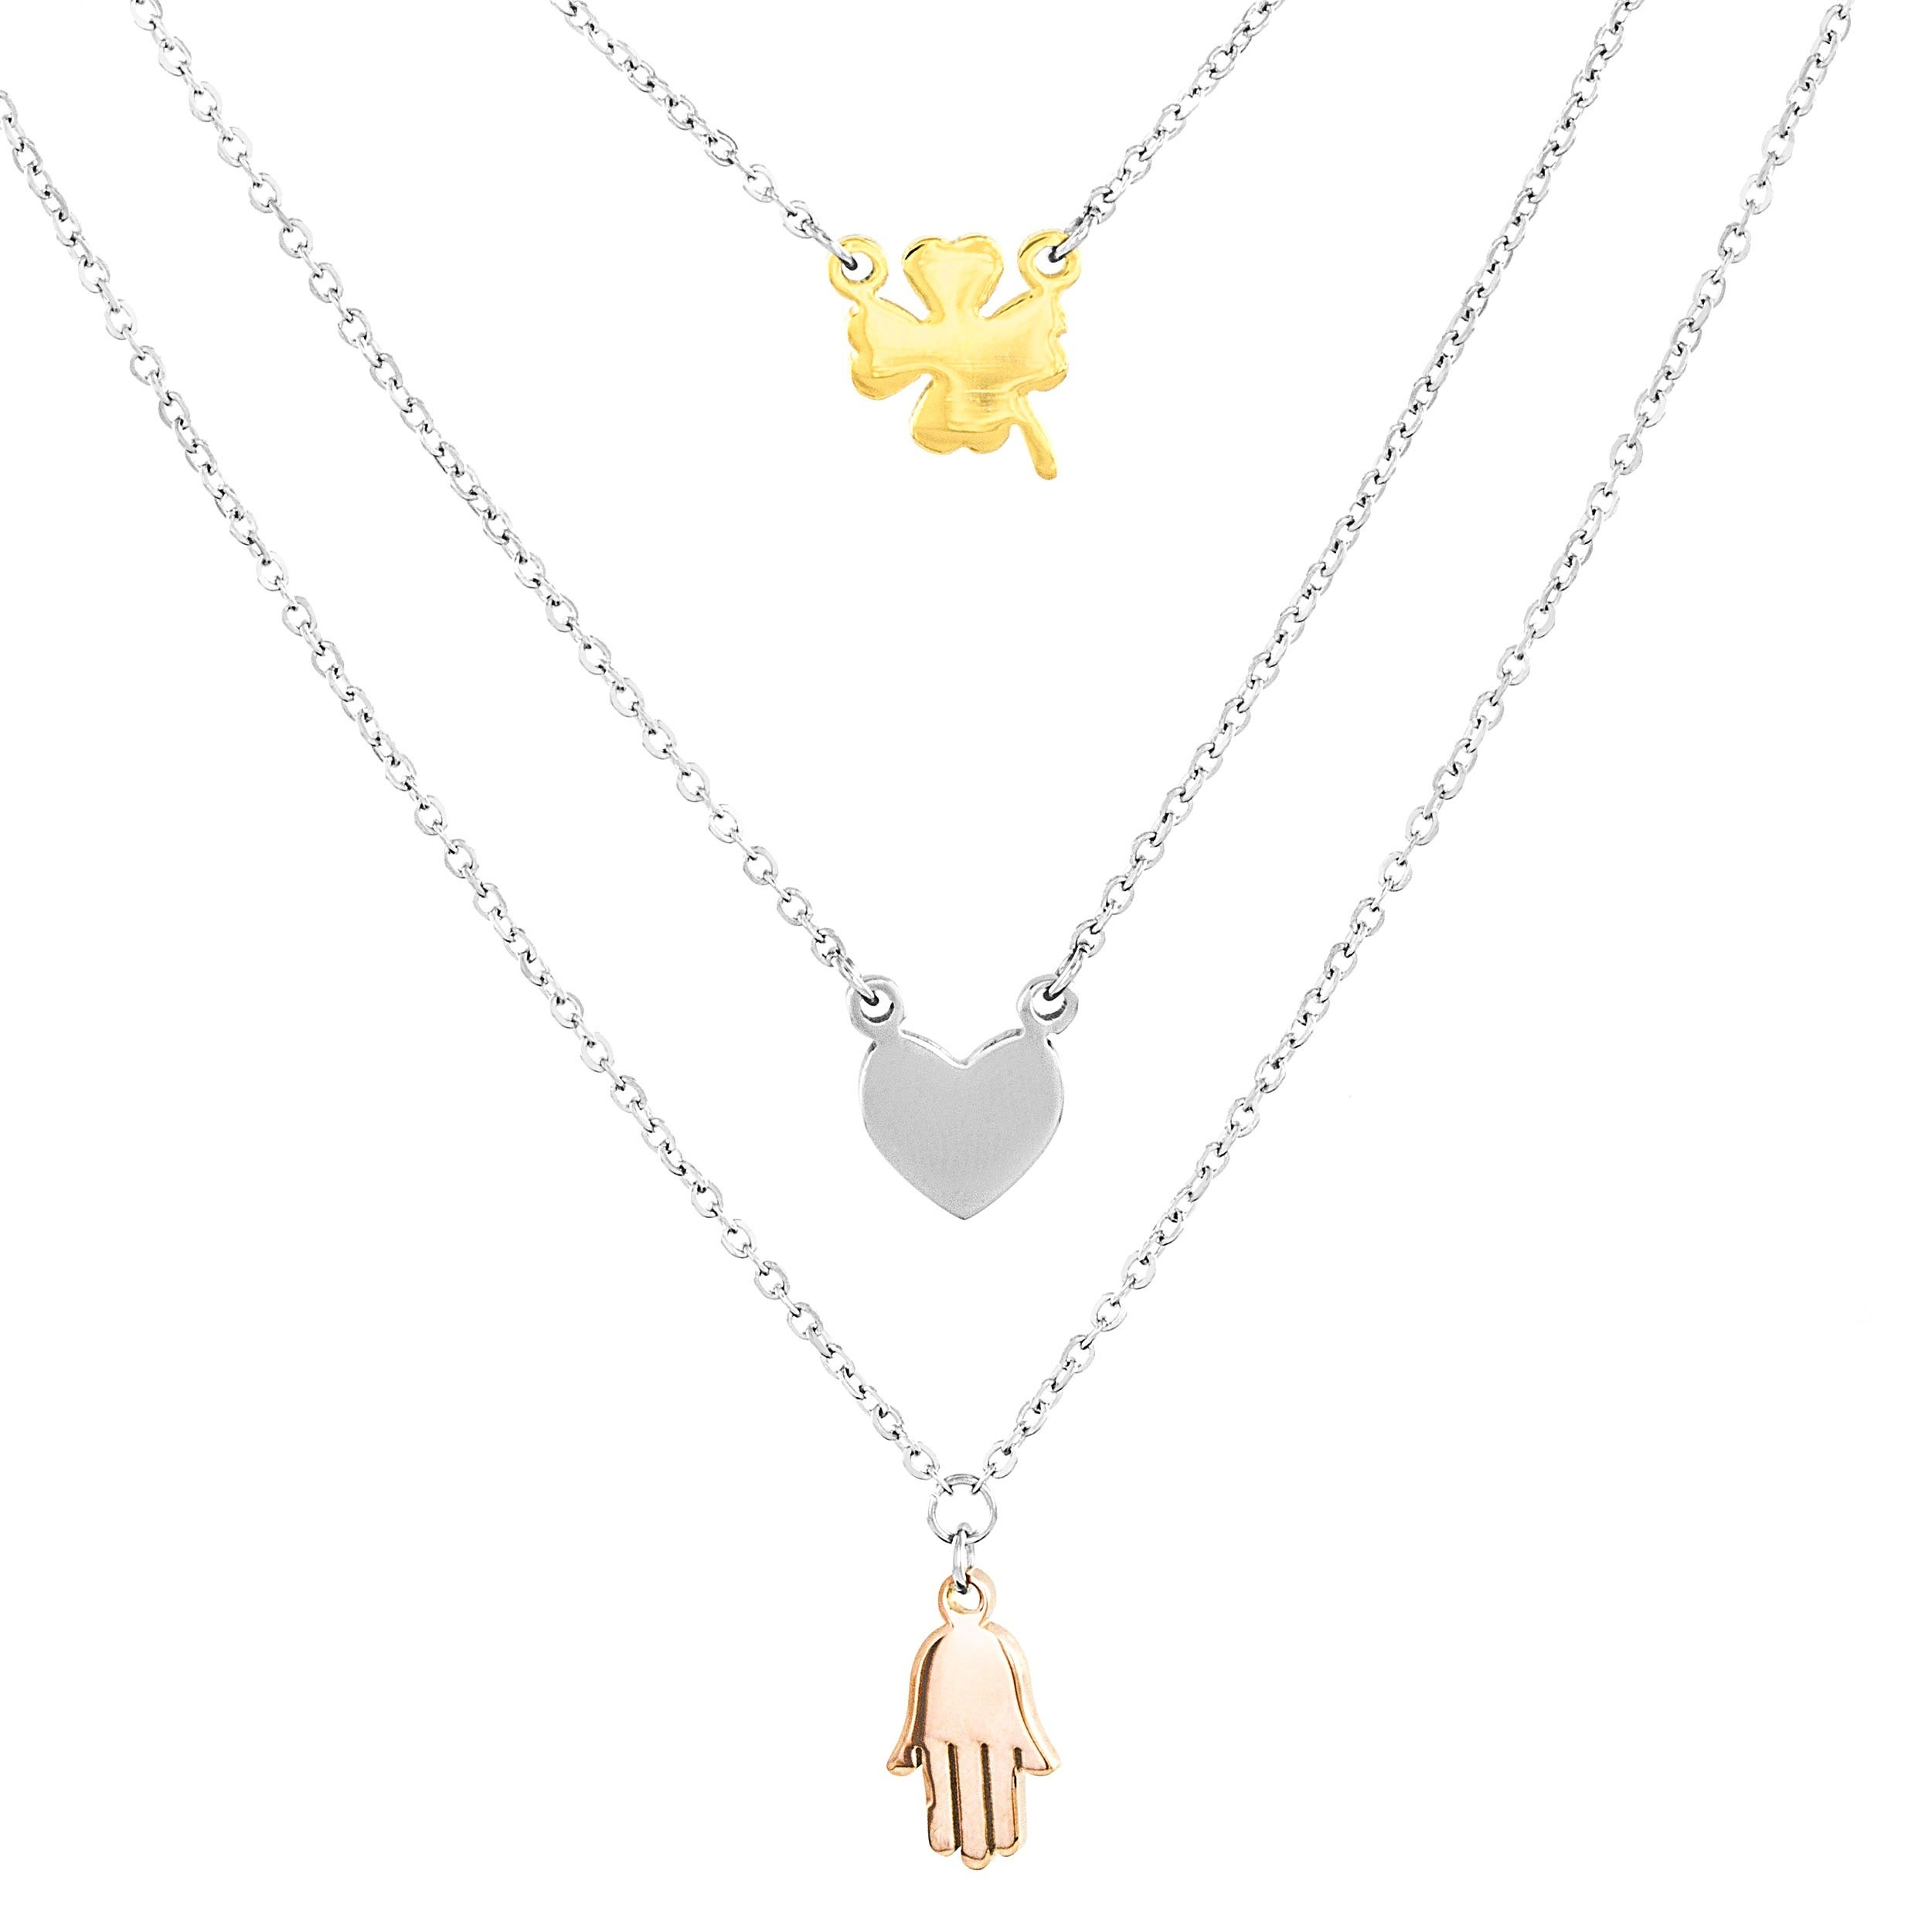 West Coast Elya Stainless Steel Clover, Heart and Hamsa L...